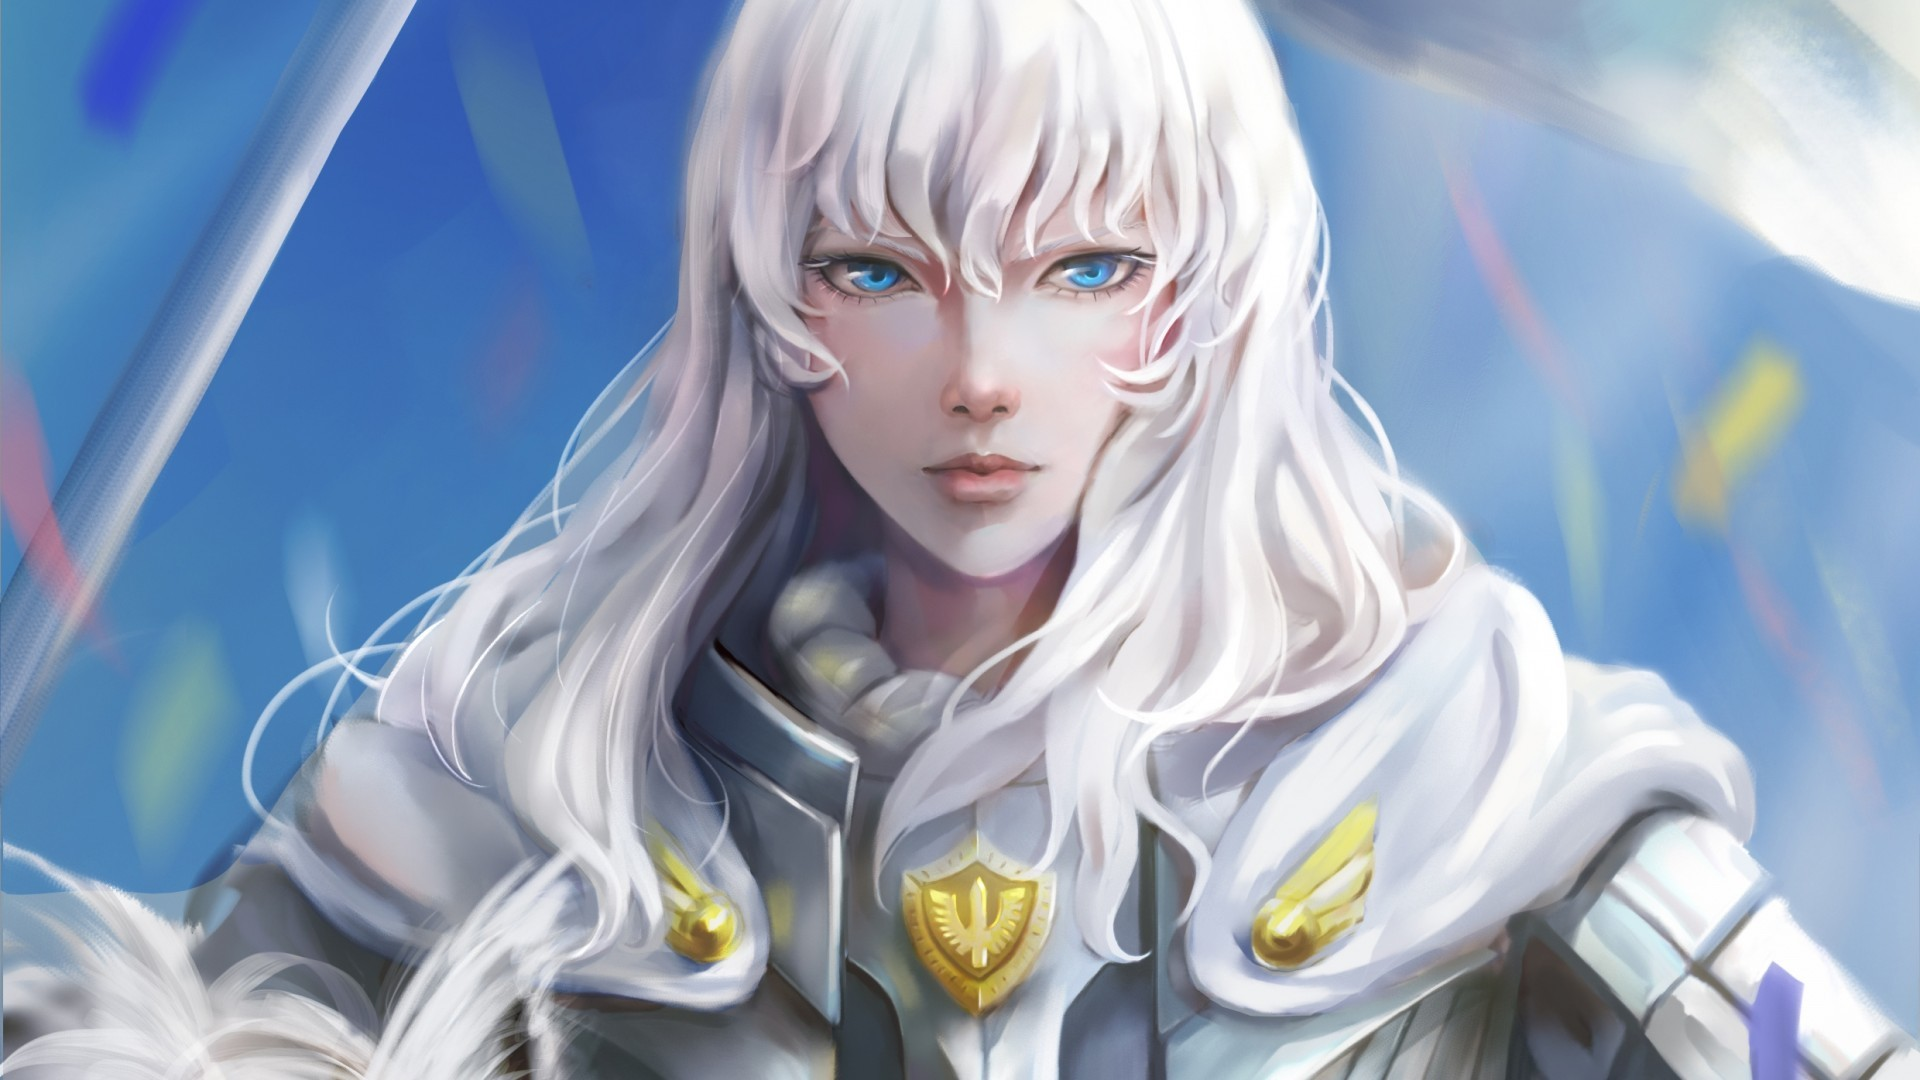 Download 1920x1080 Griffith Berserk White Hair Blue Eyes 1920x1080